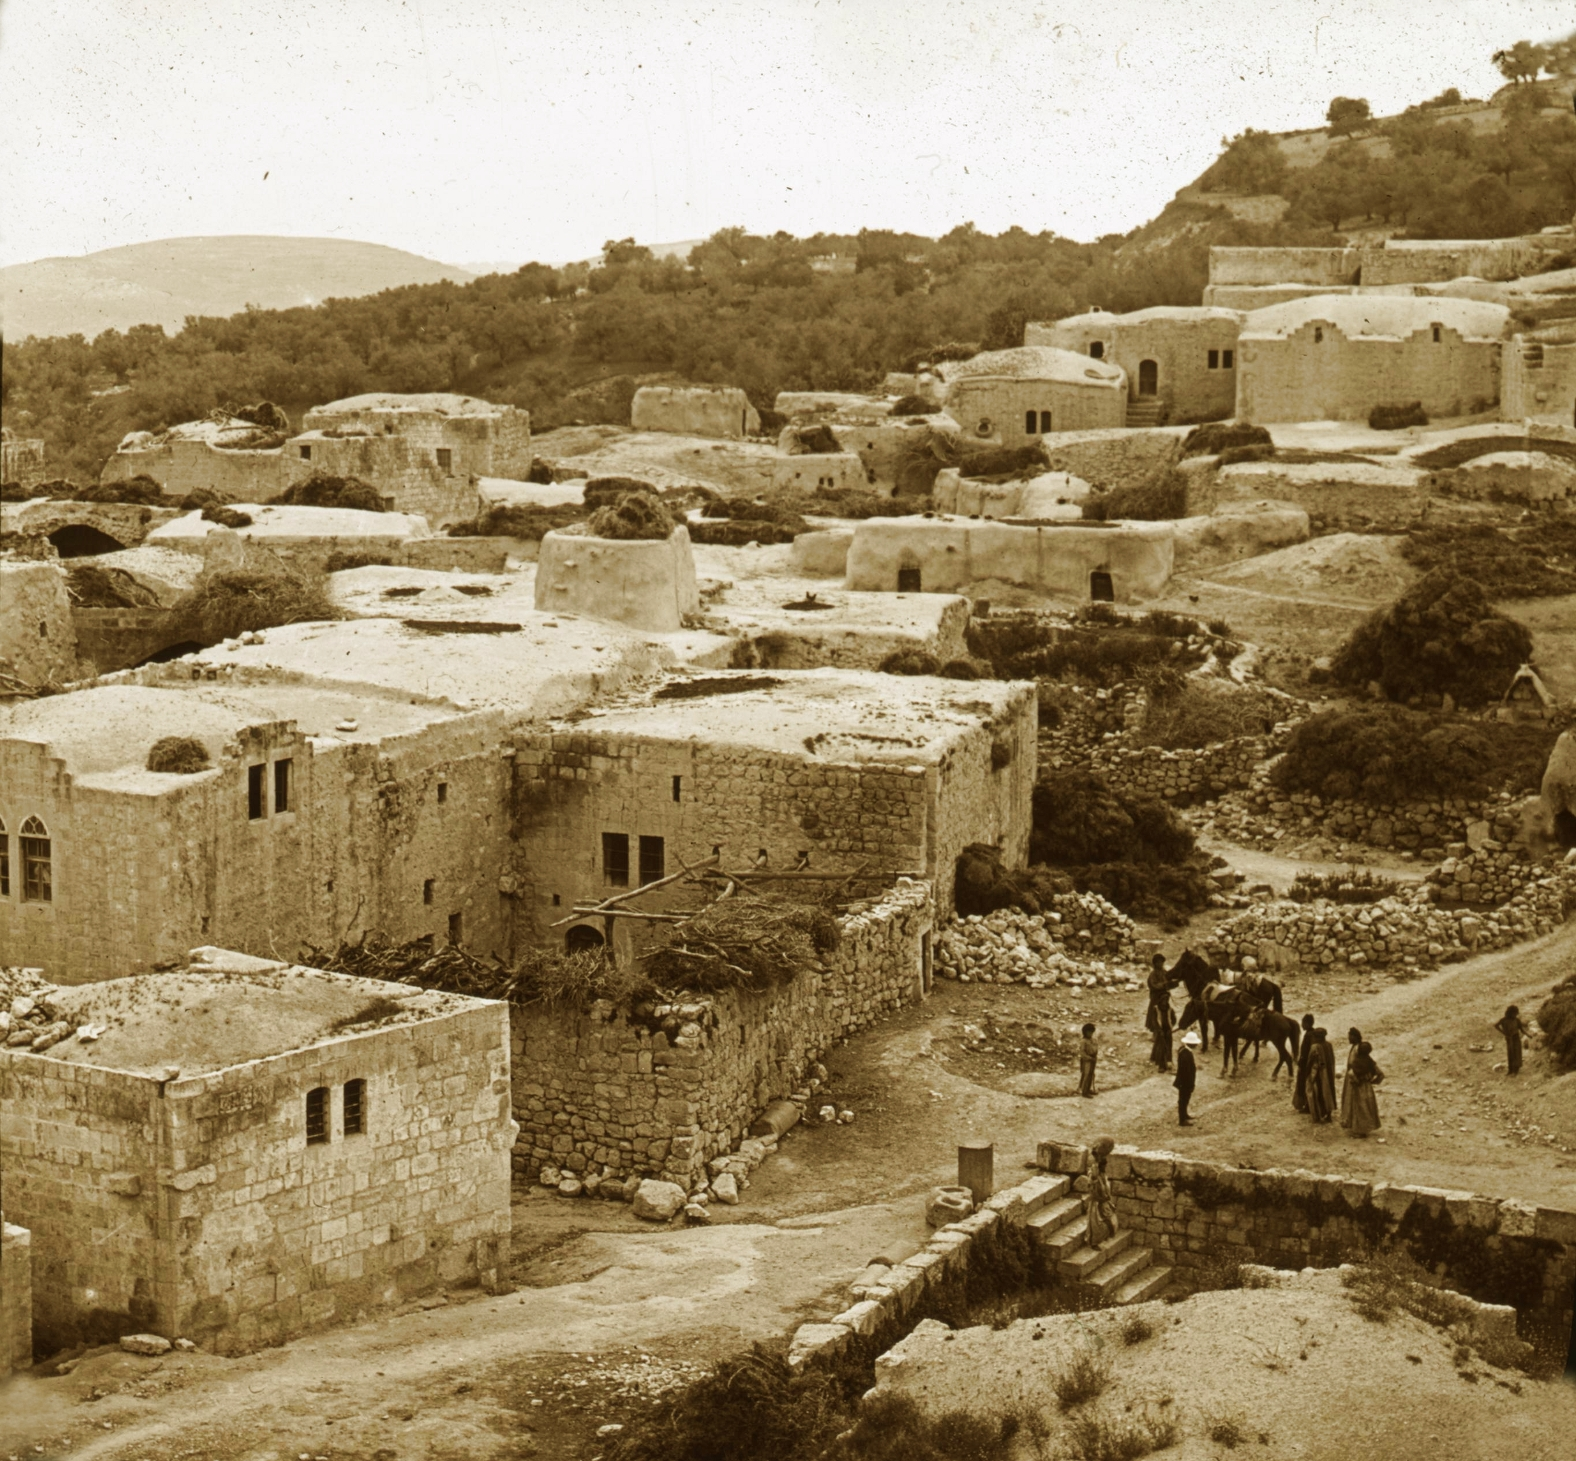 Nablus - نابلس : NABLUS - Late 19th, early 20th c. 38 - Sabastiya from the Minaret of Mosque